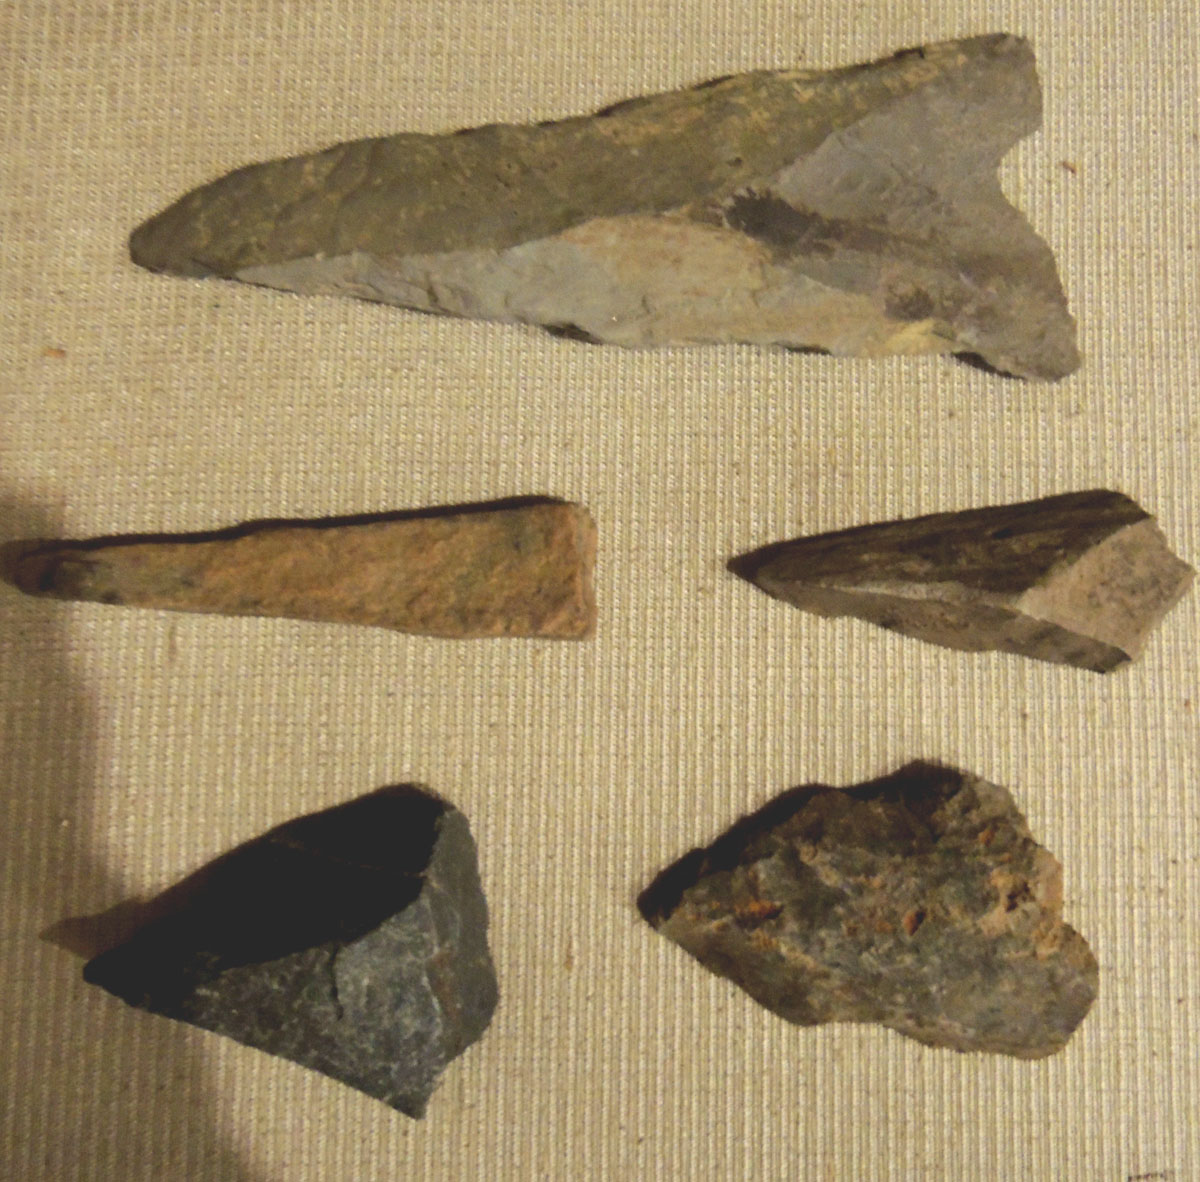 Pequossett Indian arrowheads found in Belmont